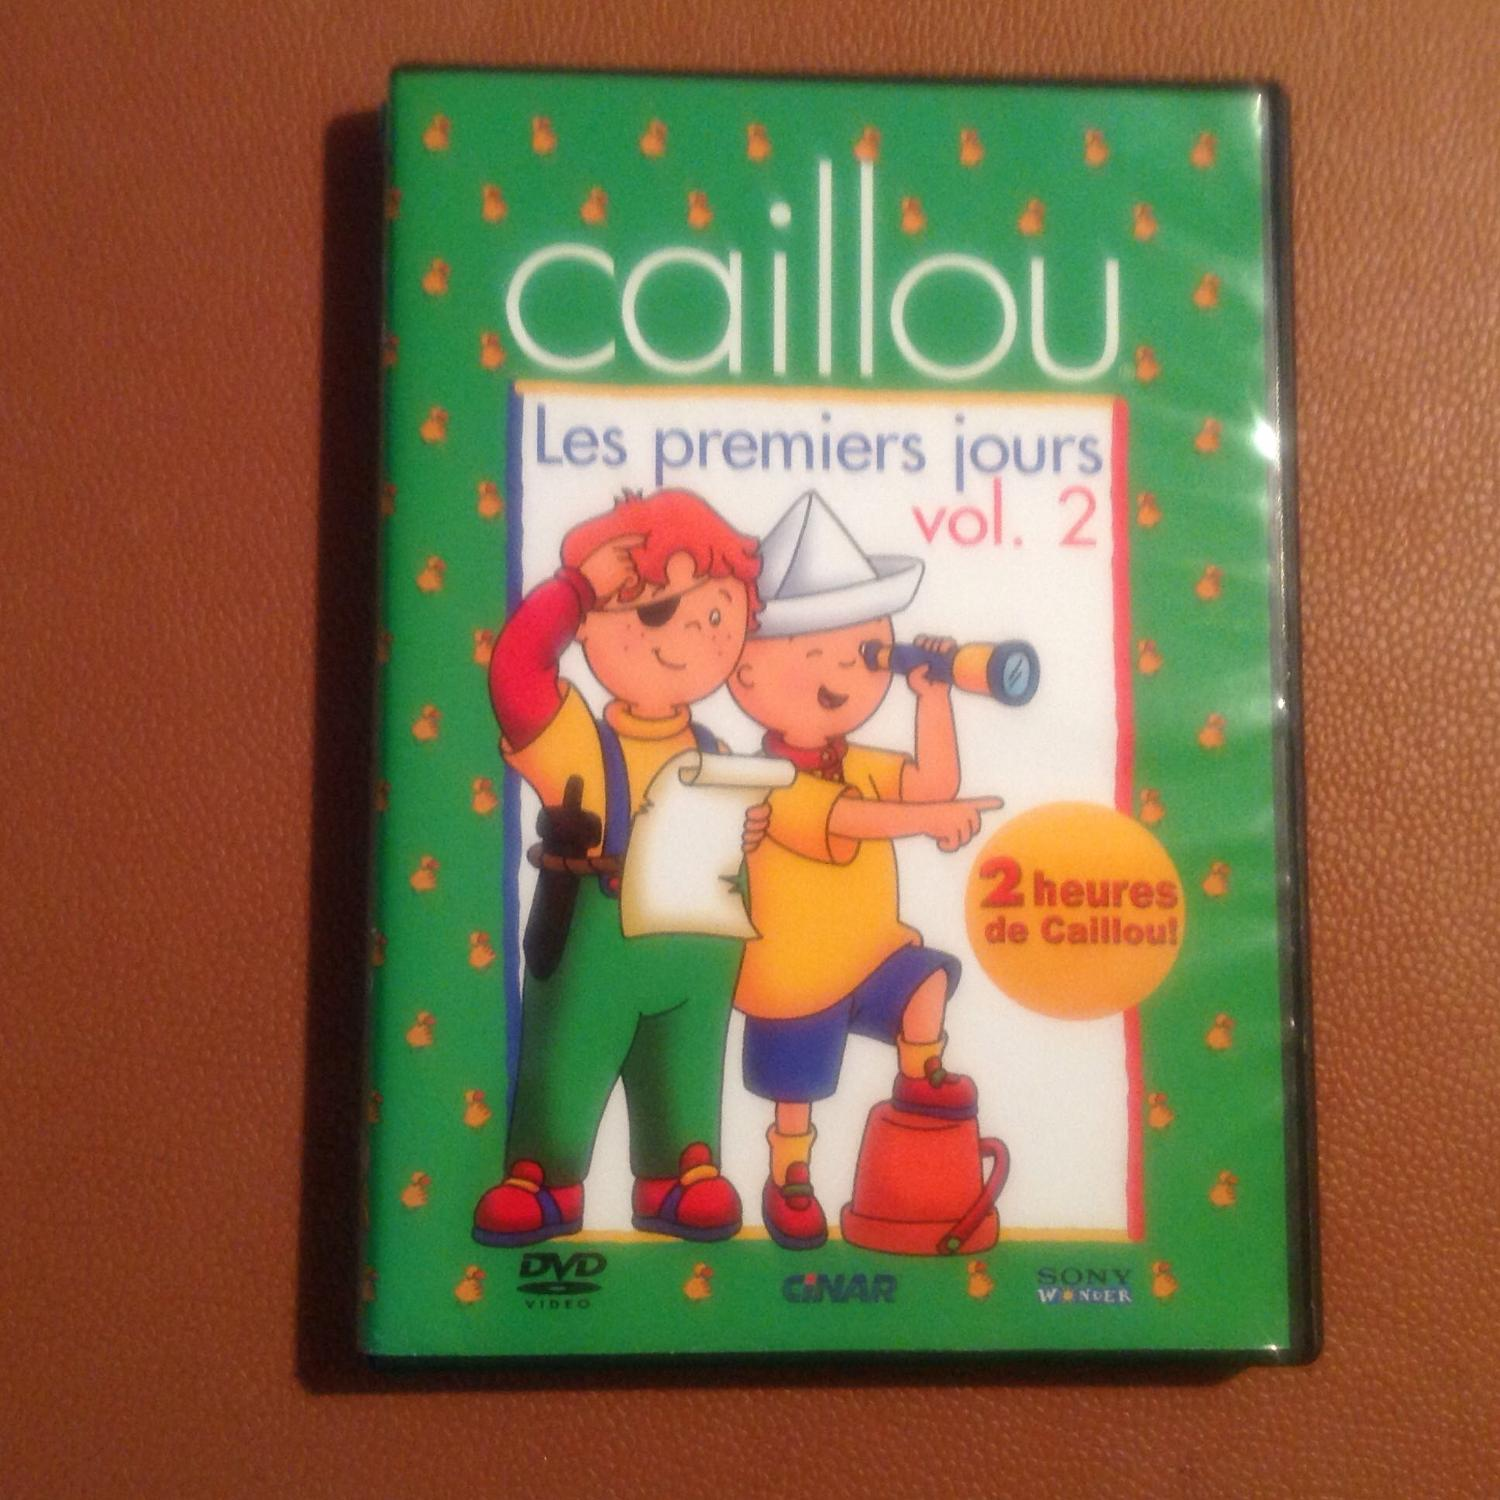 Find more dvd caillou les premiers jours vol 2 french for Caillou francais piscine